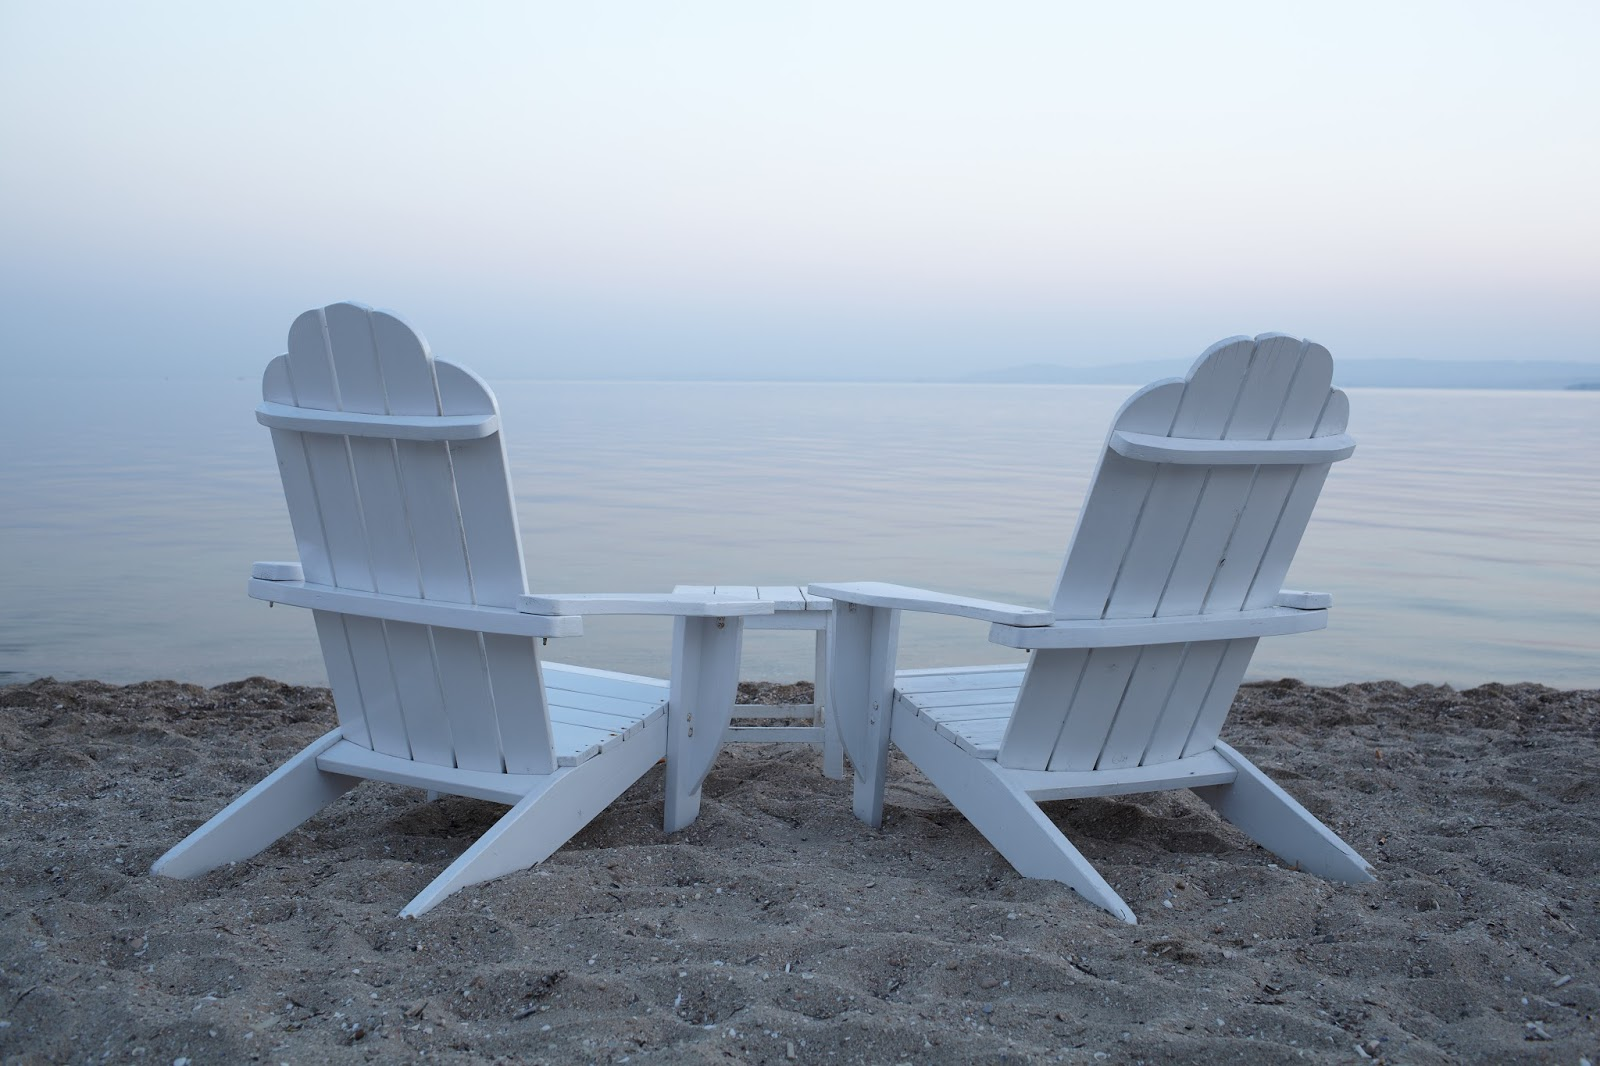 Empty white painted wooden deck chairs on a beach overlooking a calm ocean